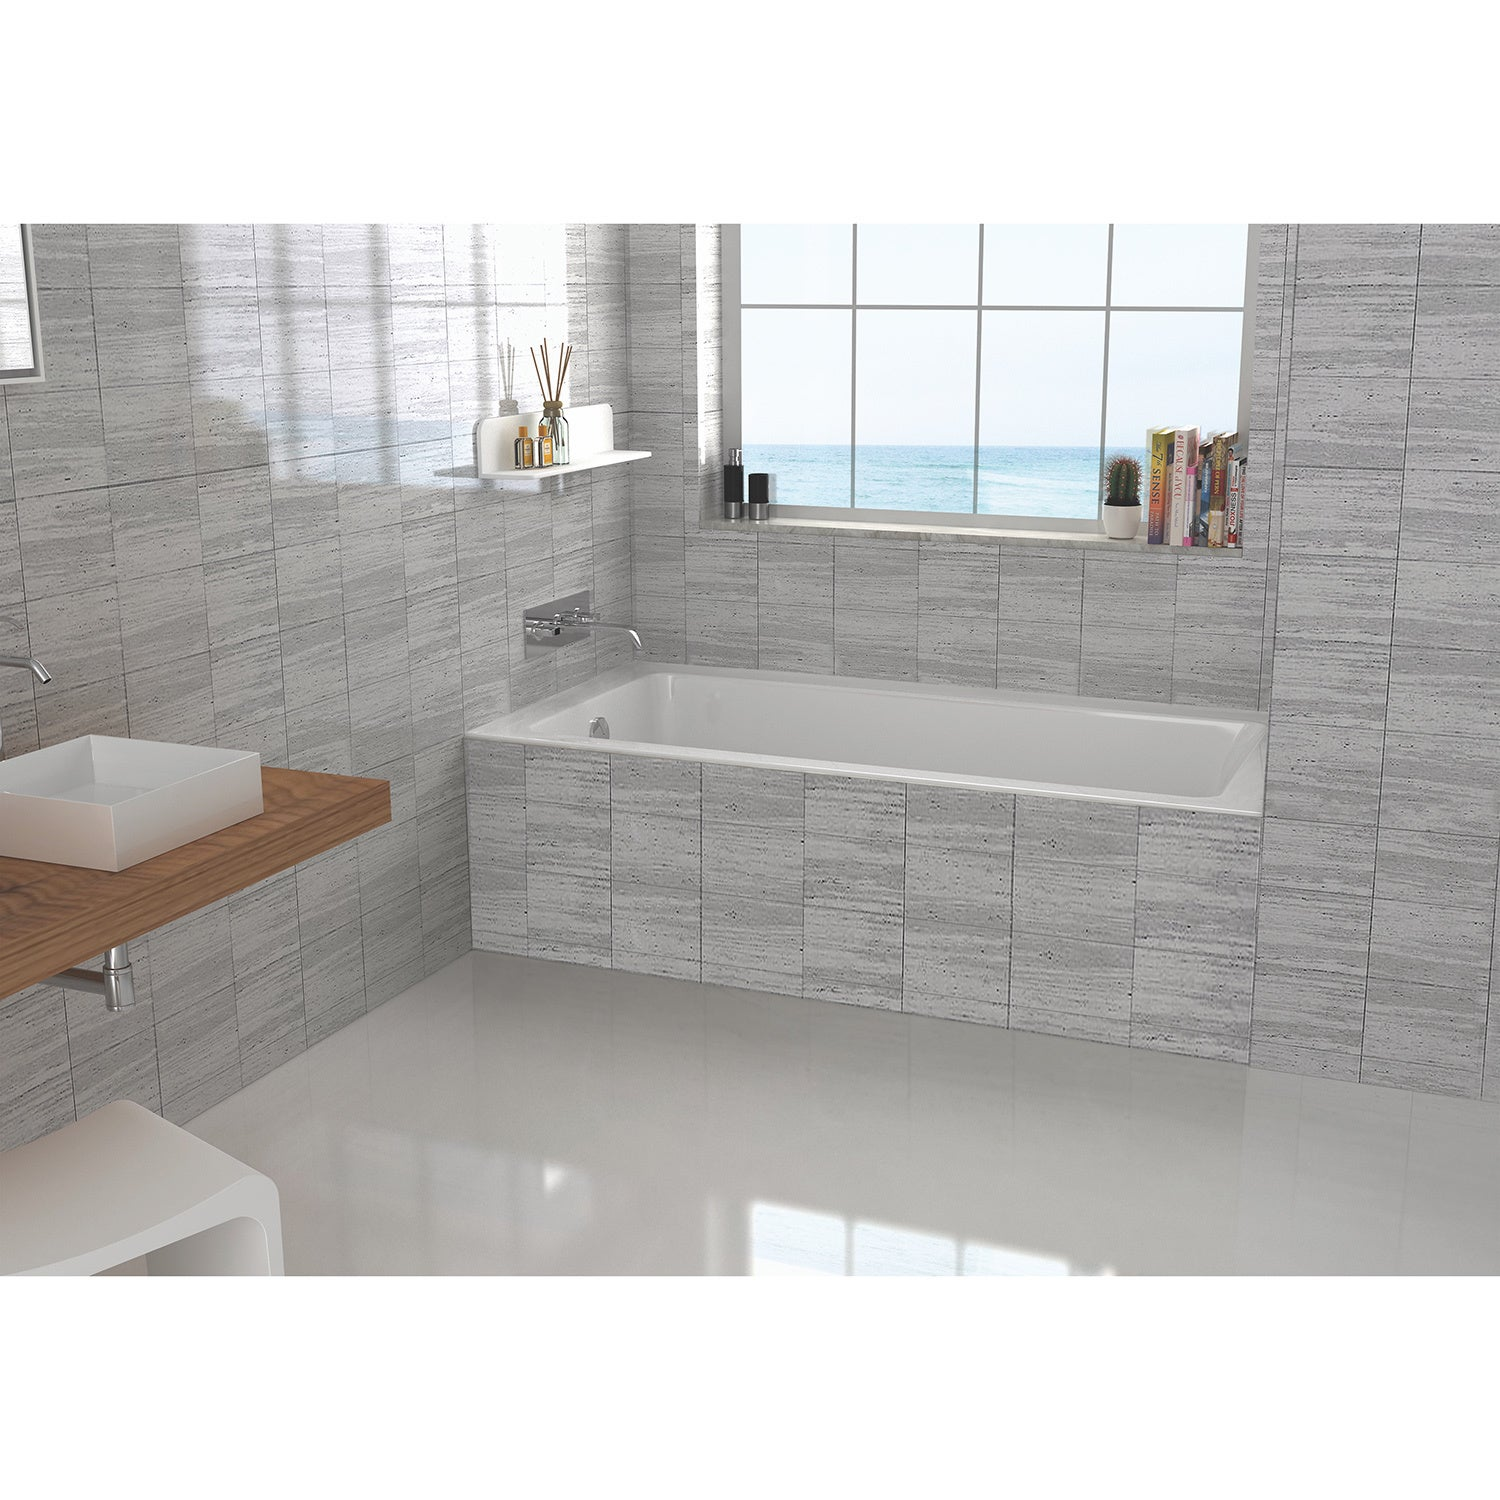 Side Fixed Tile 60 X 32 X19